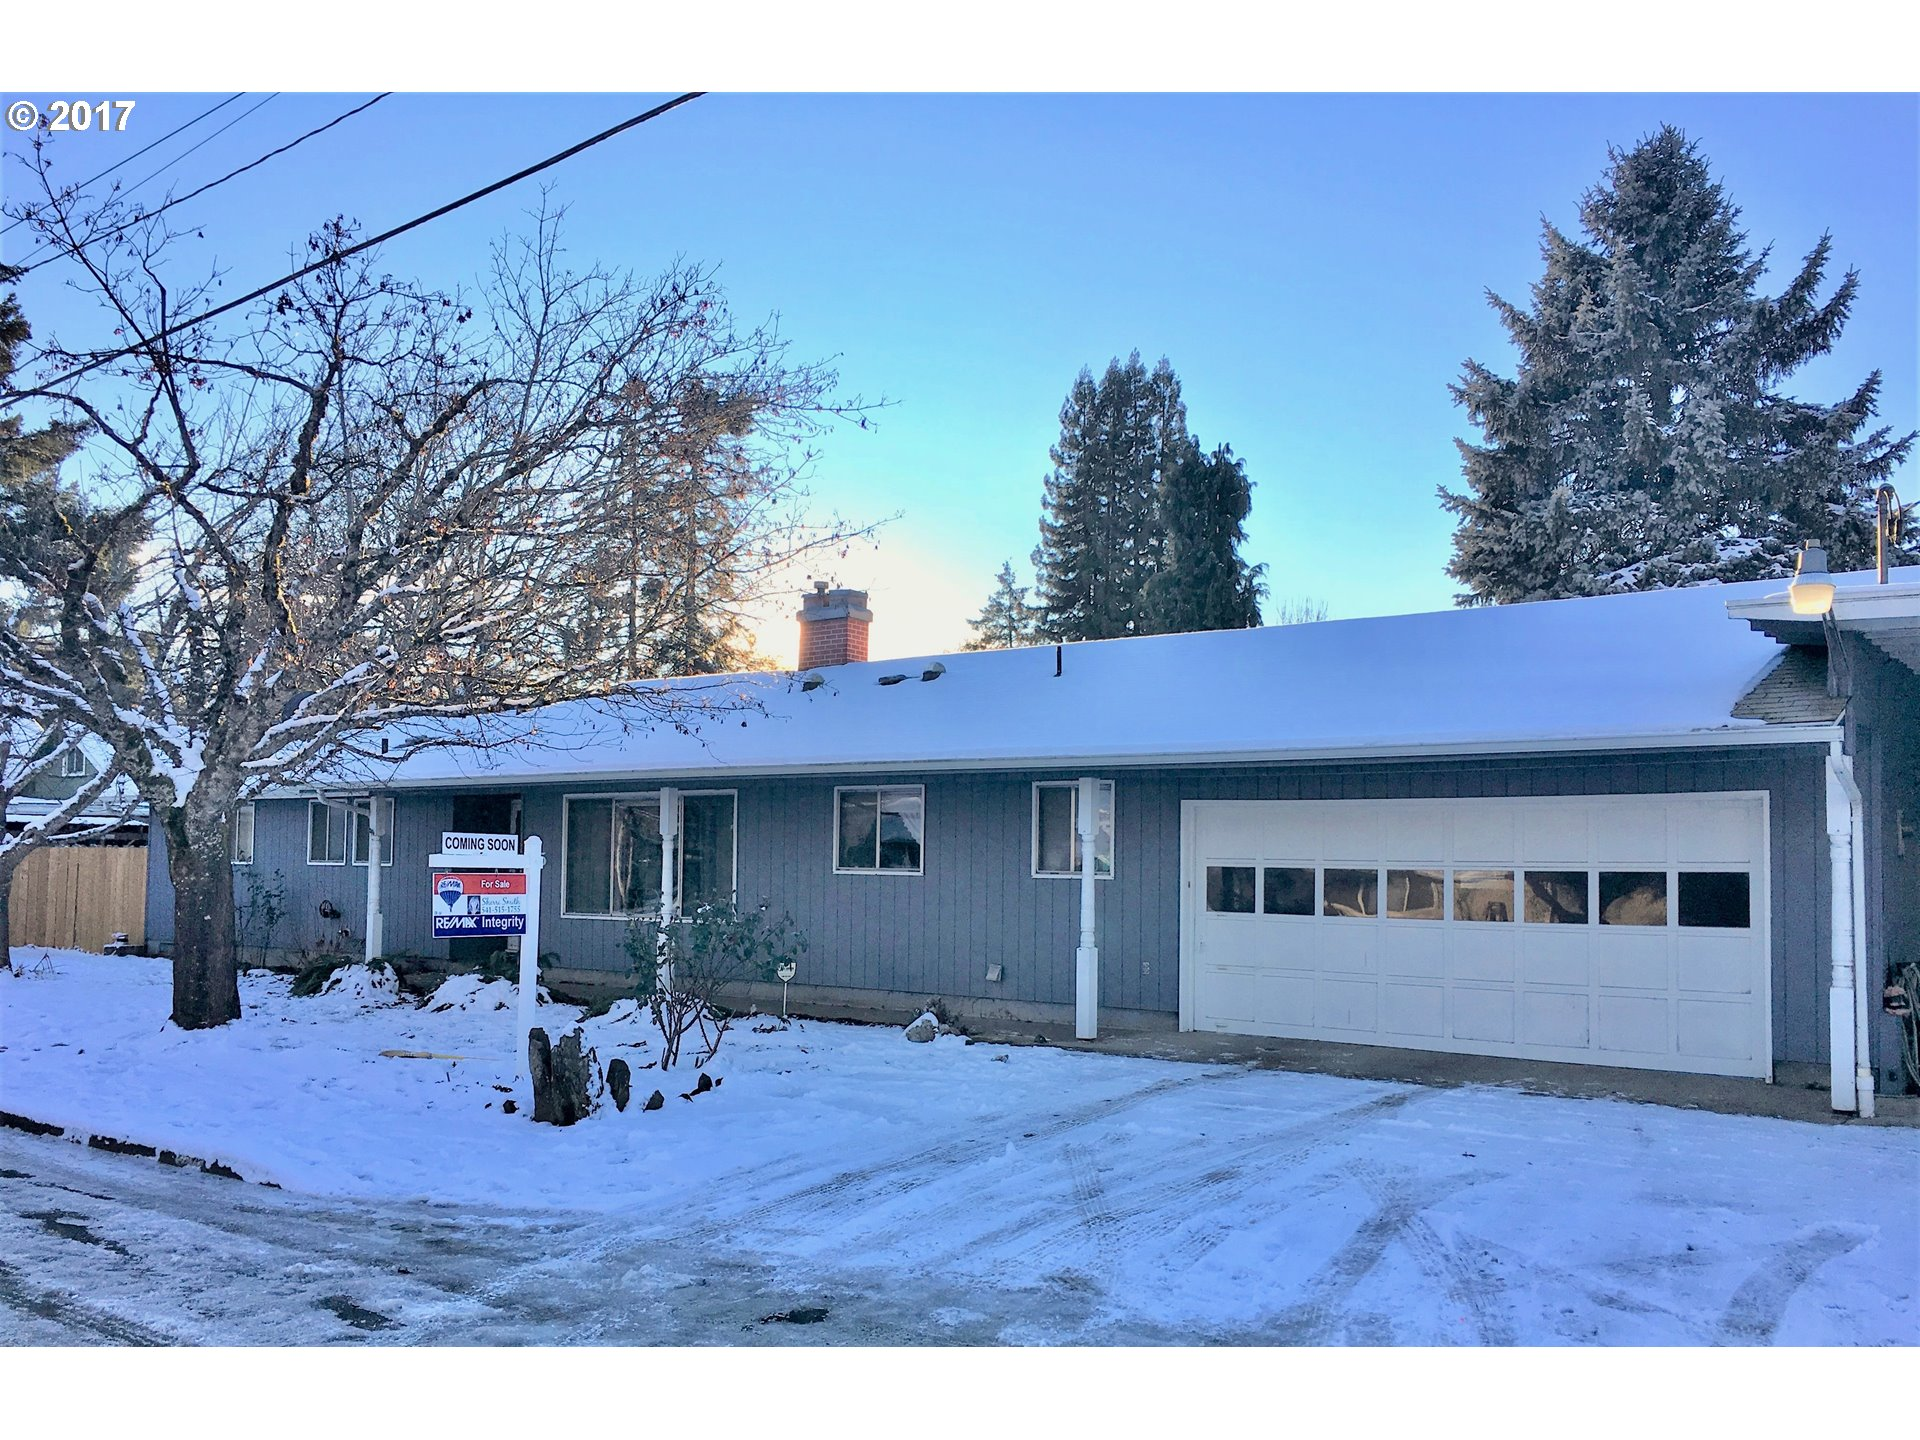 635 N 16TH ST, Cottage Grove, OR 97424